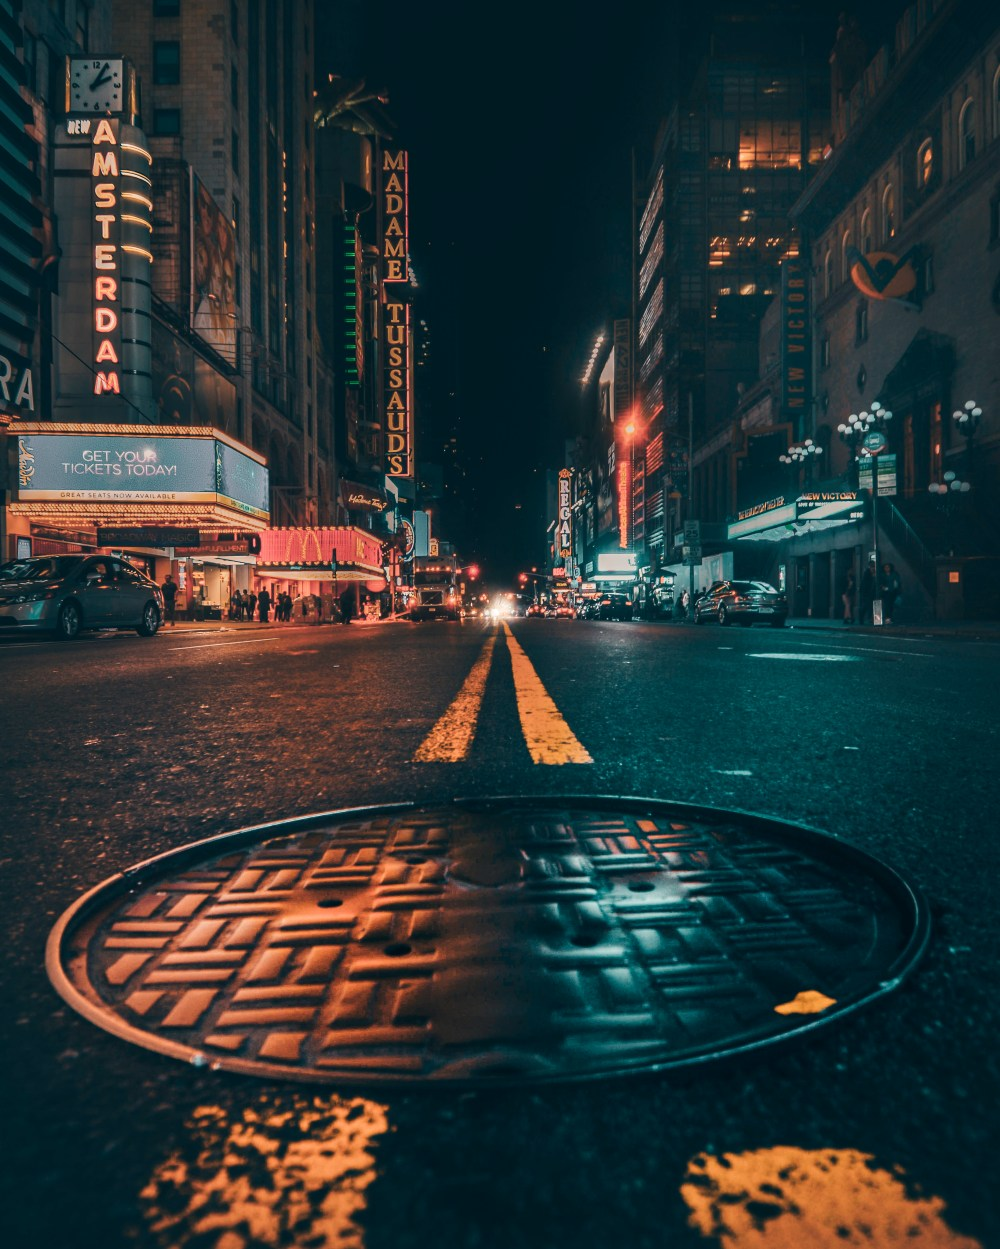 City Background Hd : background, Night, Pictures, Download, Images, Unsplash